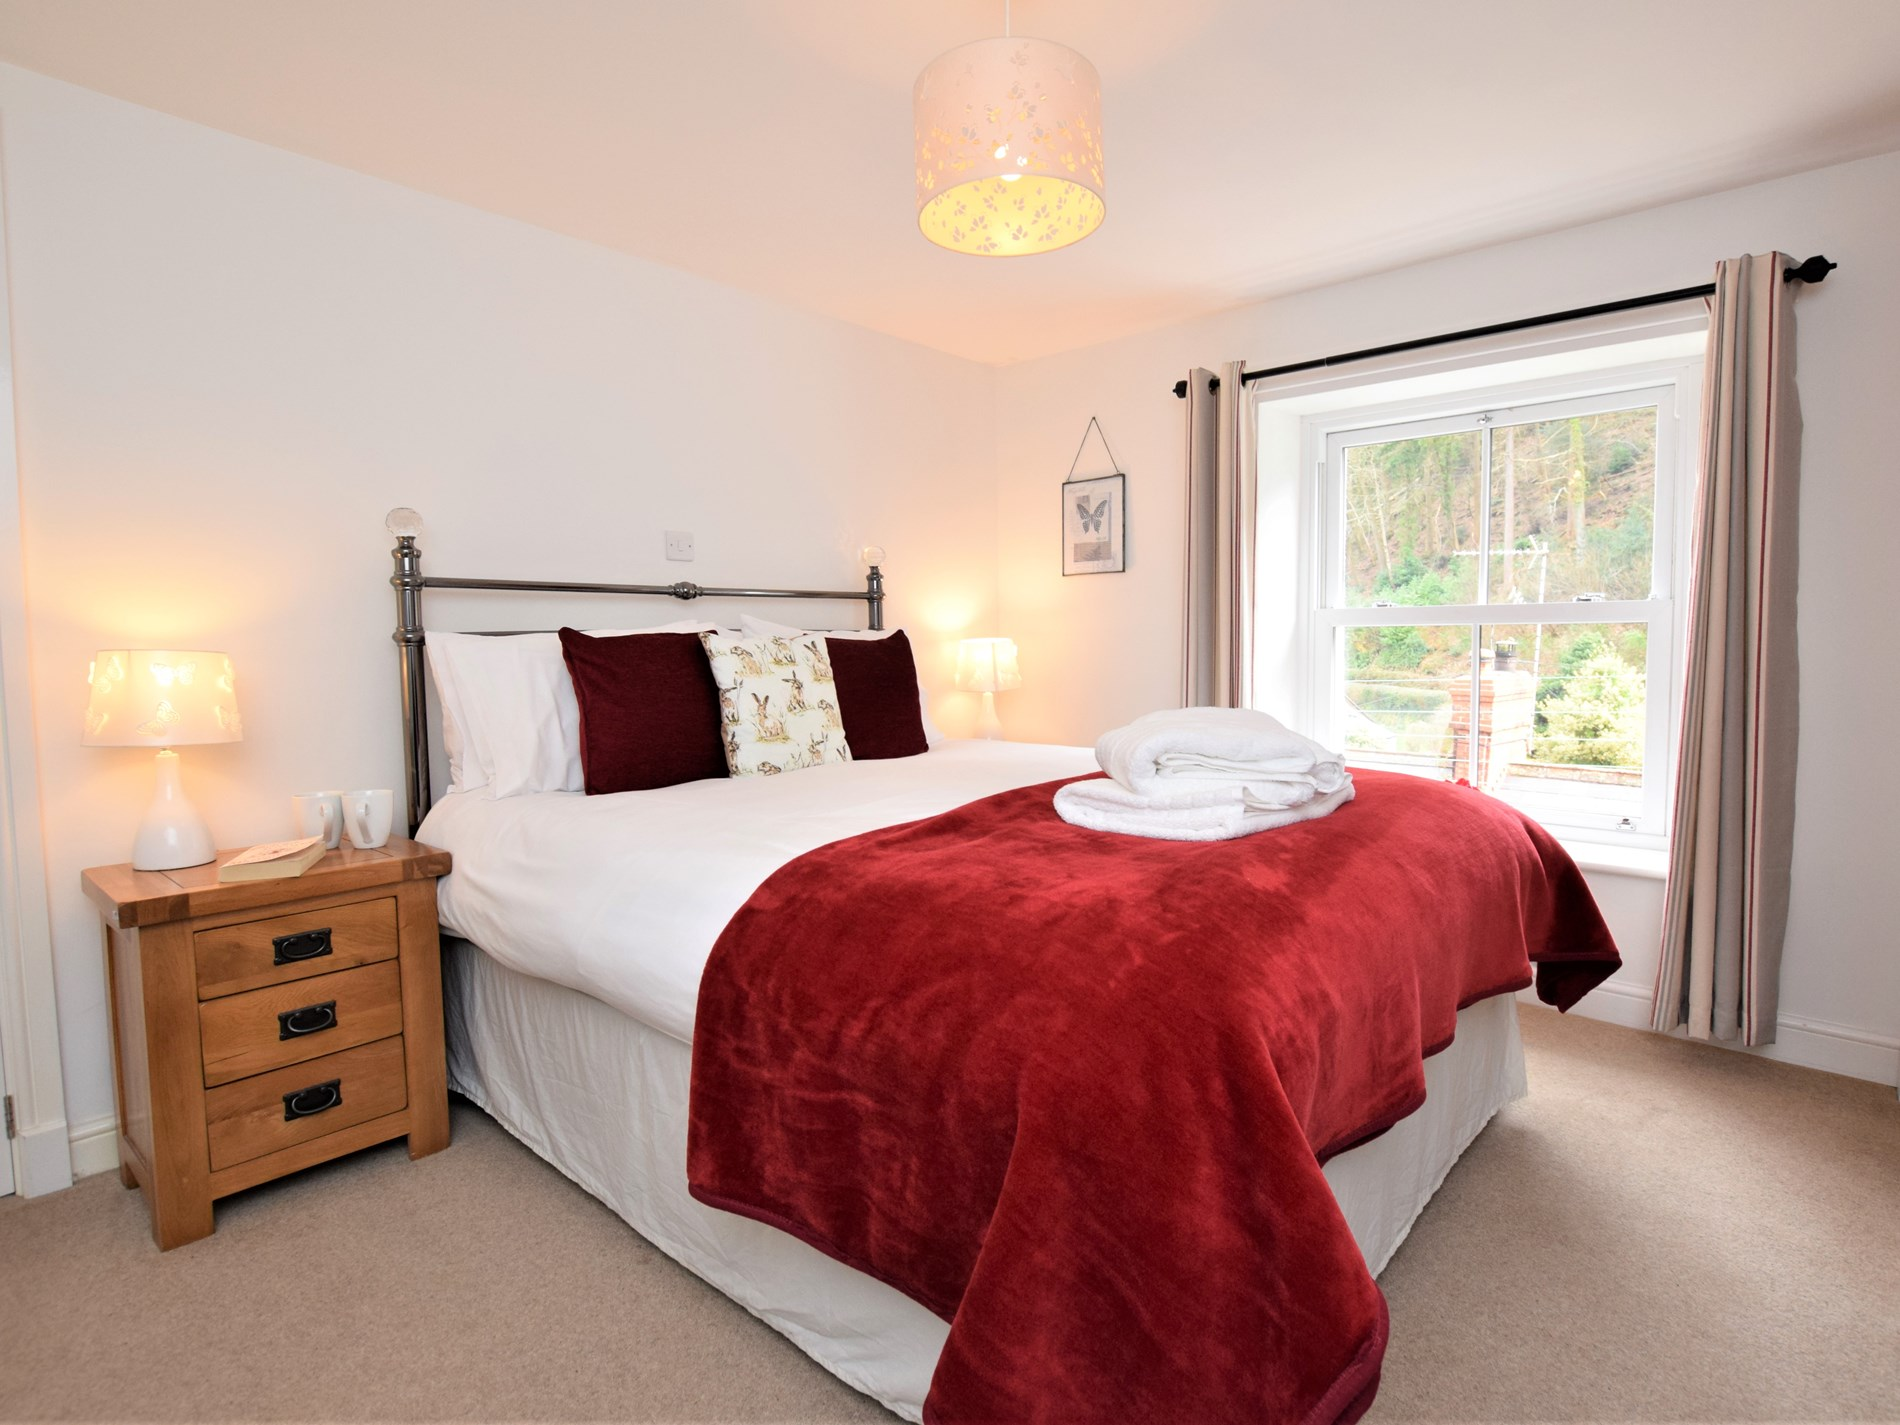 3 Bedroom Cottage in Minehead, Dorset and Somerset